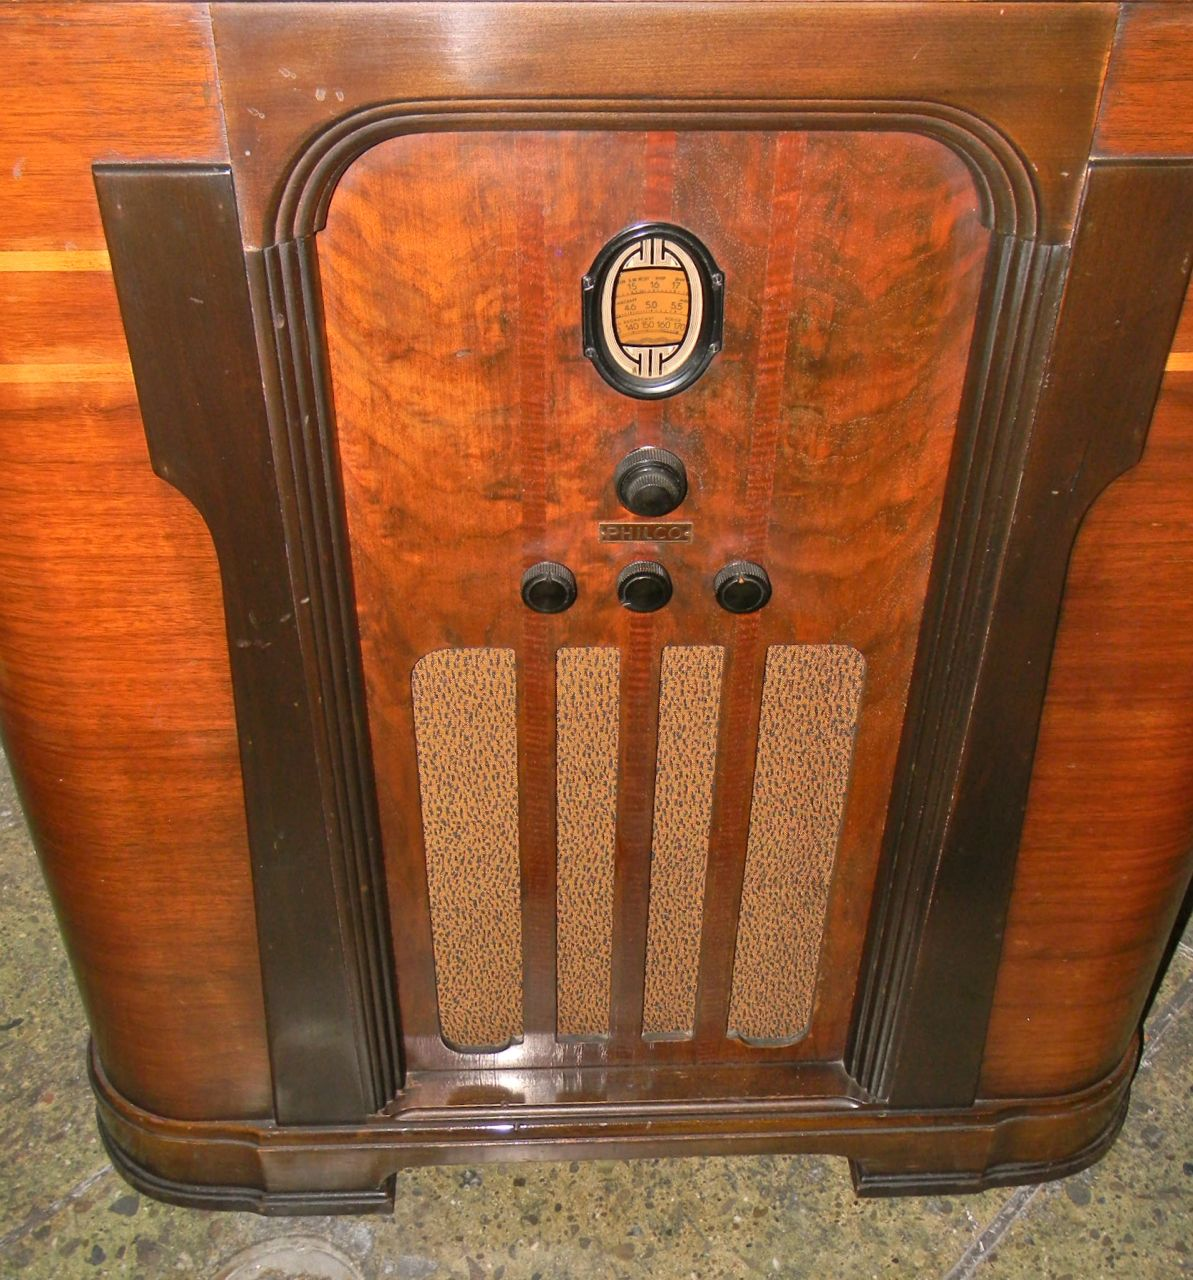 Deco Bar Americain 1930s American Art Deco Radio Bar Radiobar Sold Items